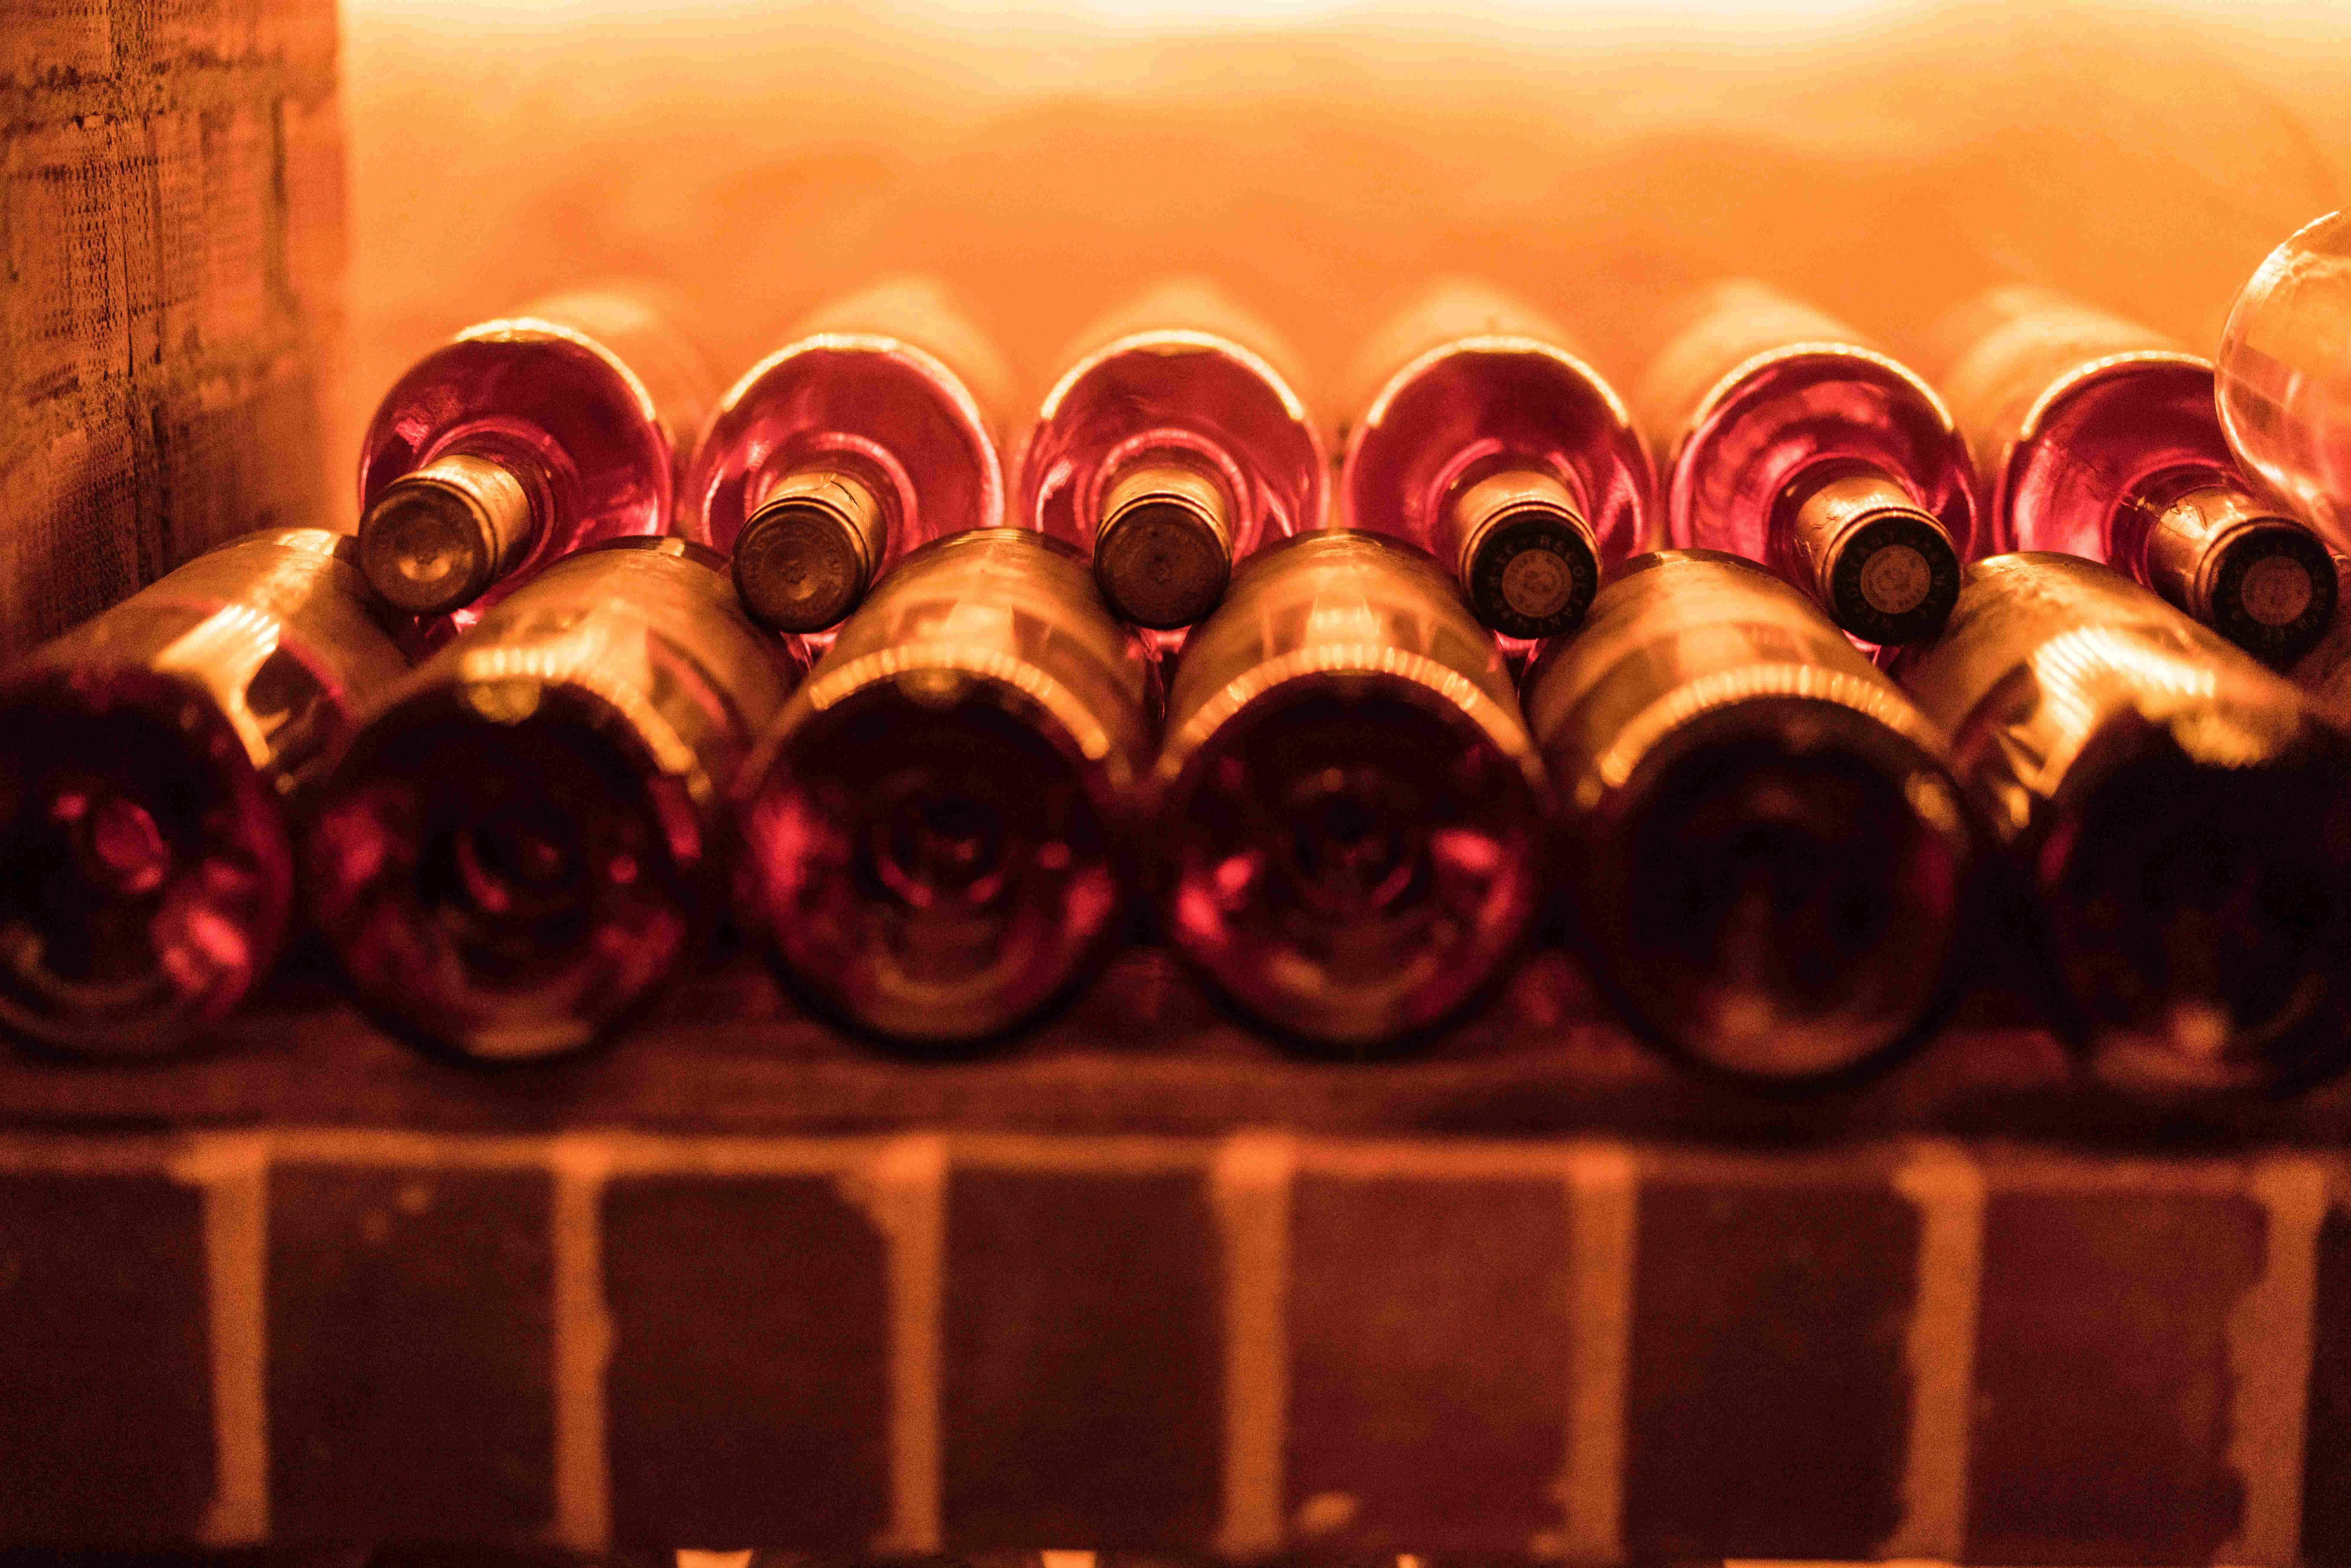 The delicate art of storing and ageing wine